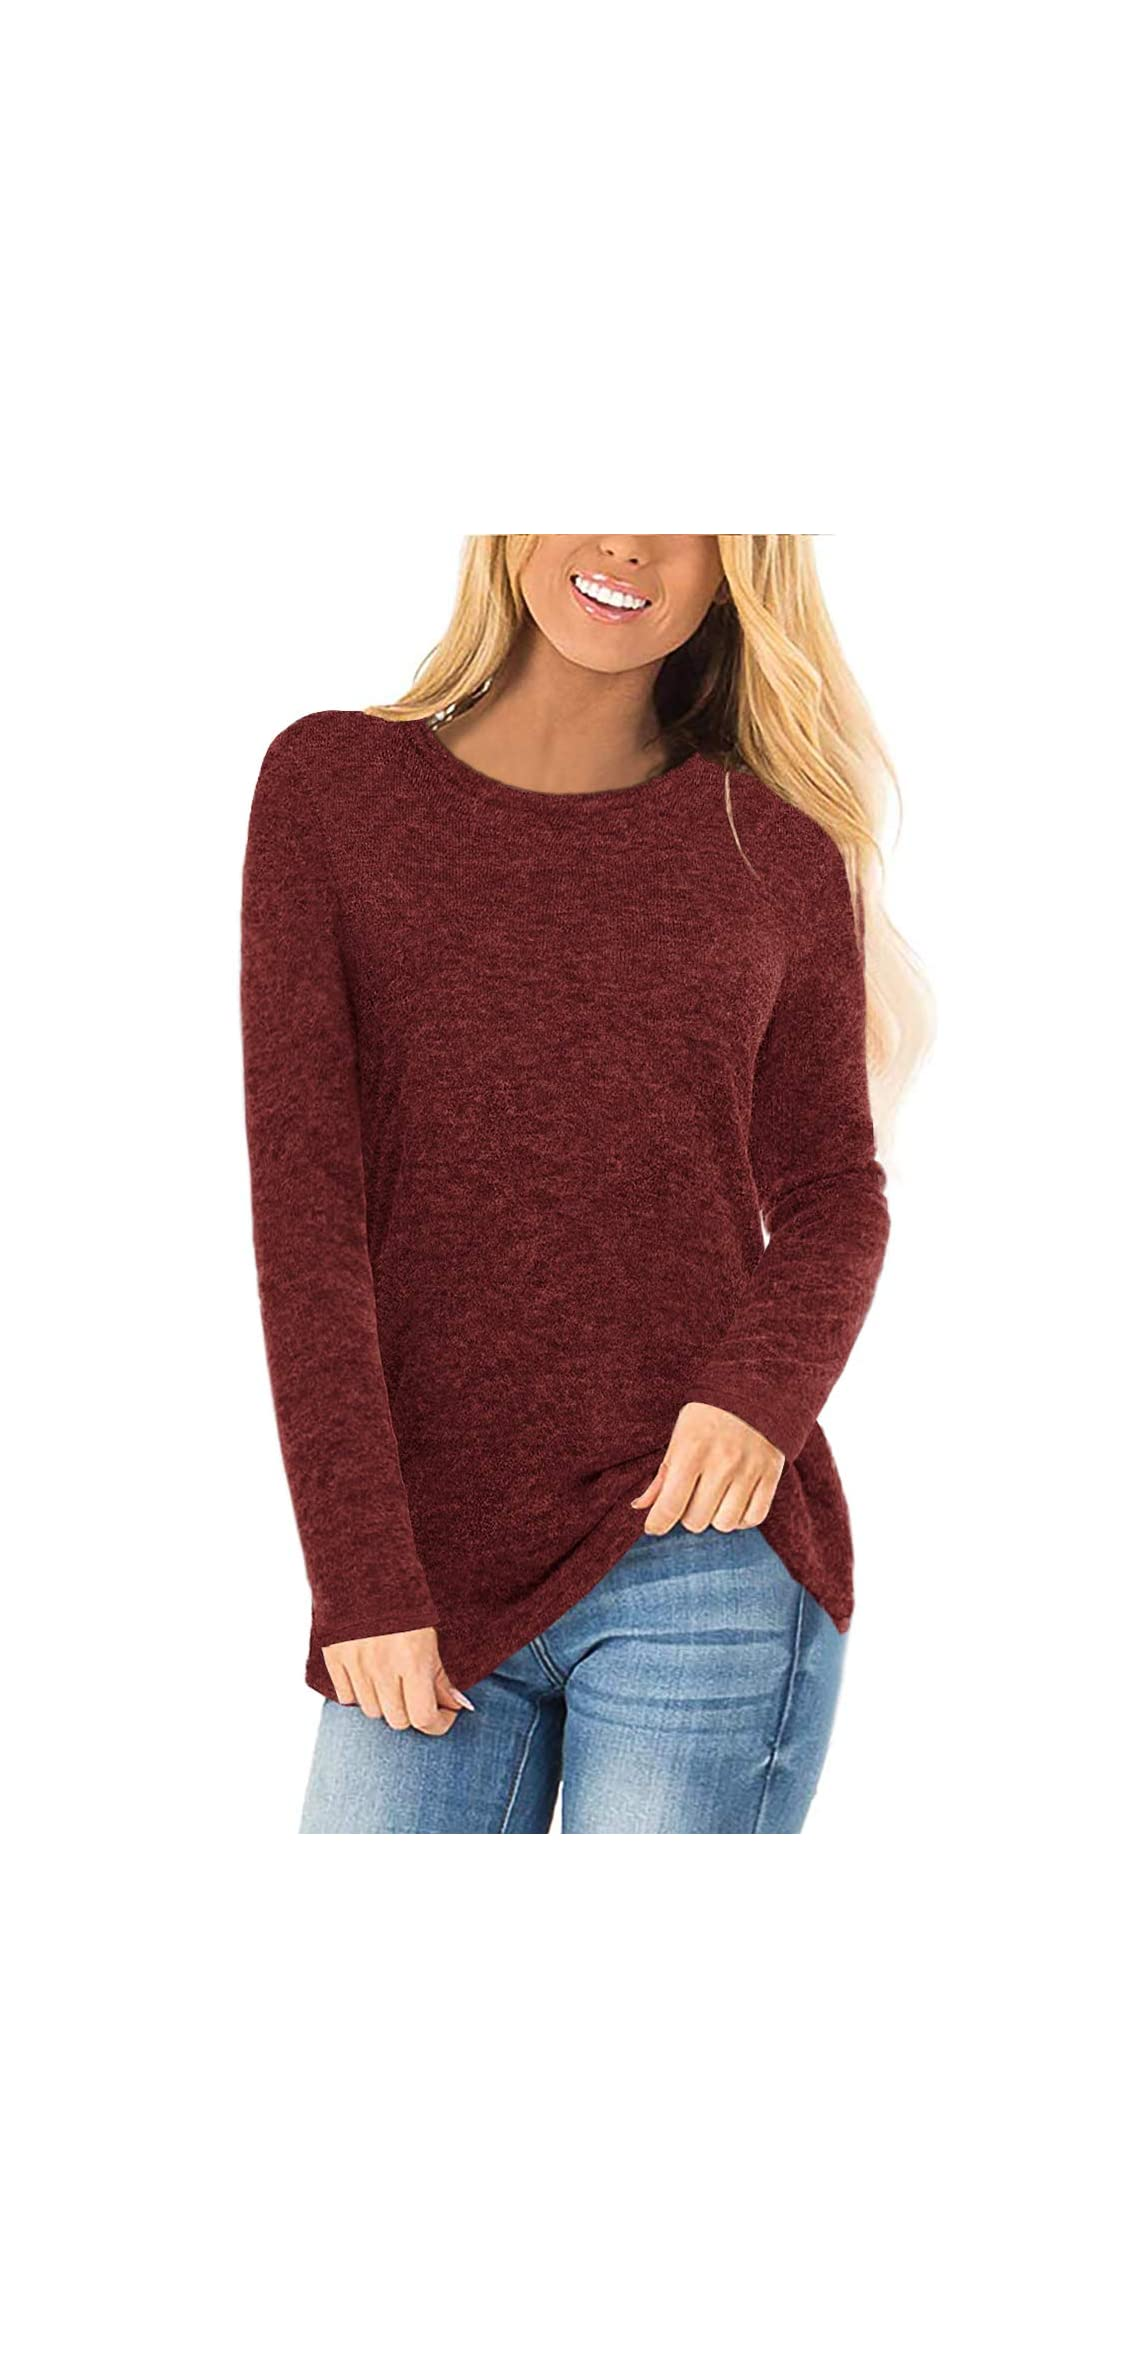 Womens Long Sleeve Crewneck Sweaters Casual Solid Tops